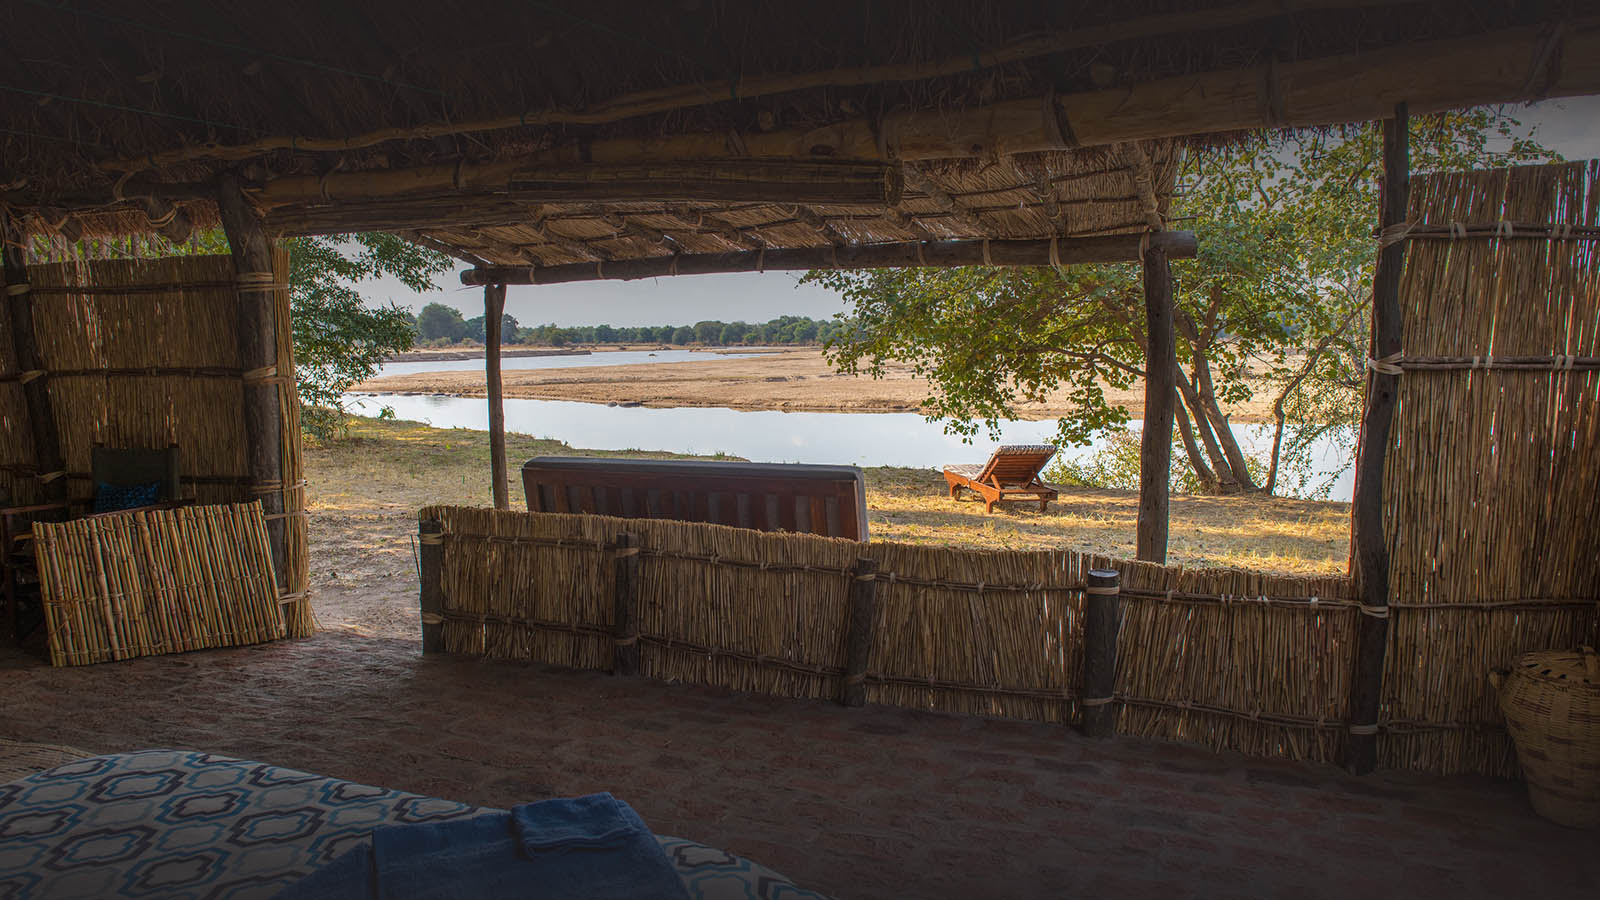 takwela-camp-north-luangwa-national-park-lodges-zambia-in-style-rustic-chic-chalet-view